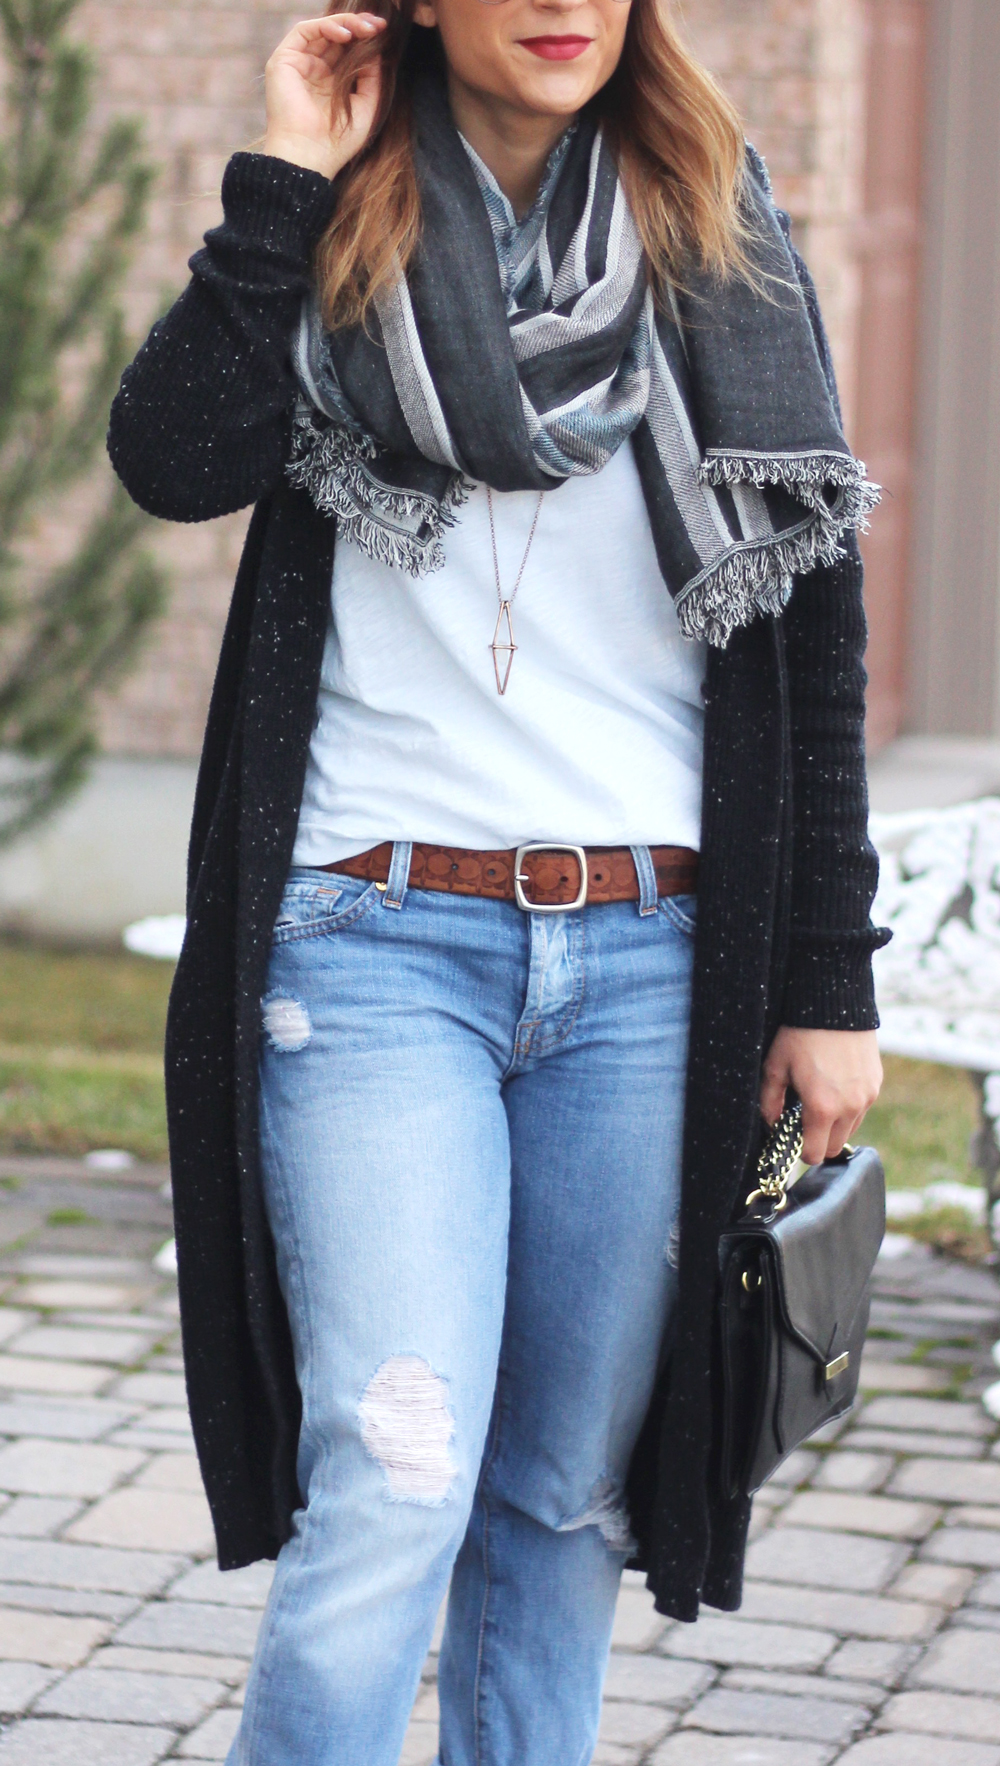 fall outfit idea - how to wear a longline cardigan and a blanket scarf, with boyfriend jeans